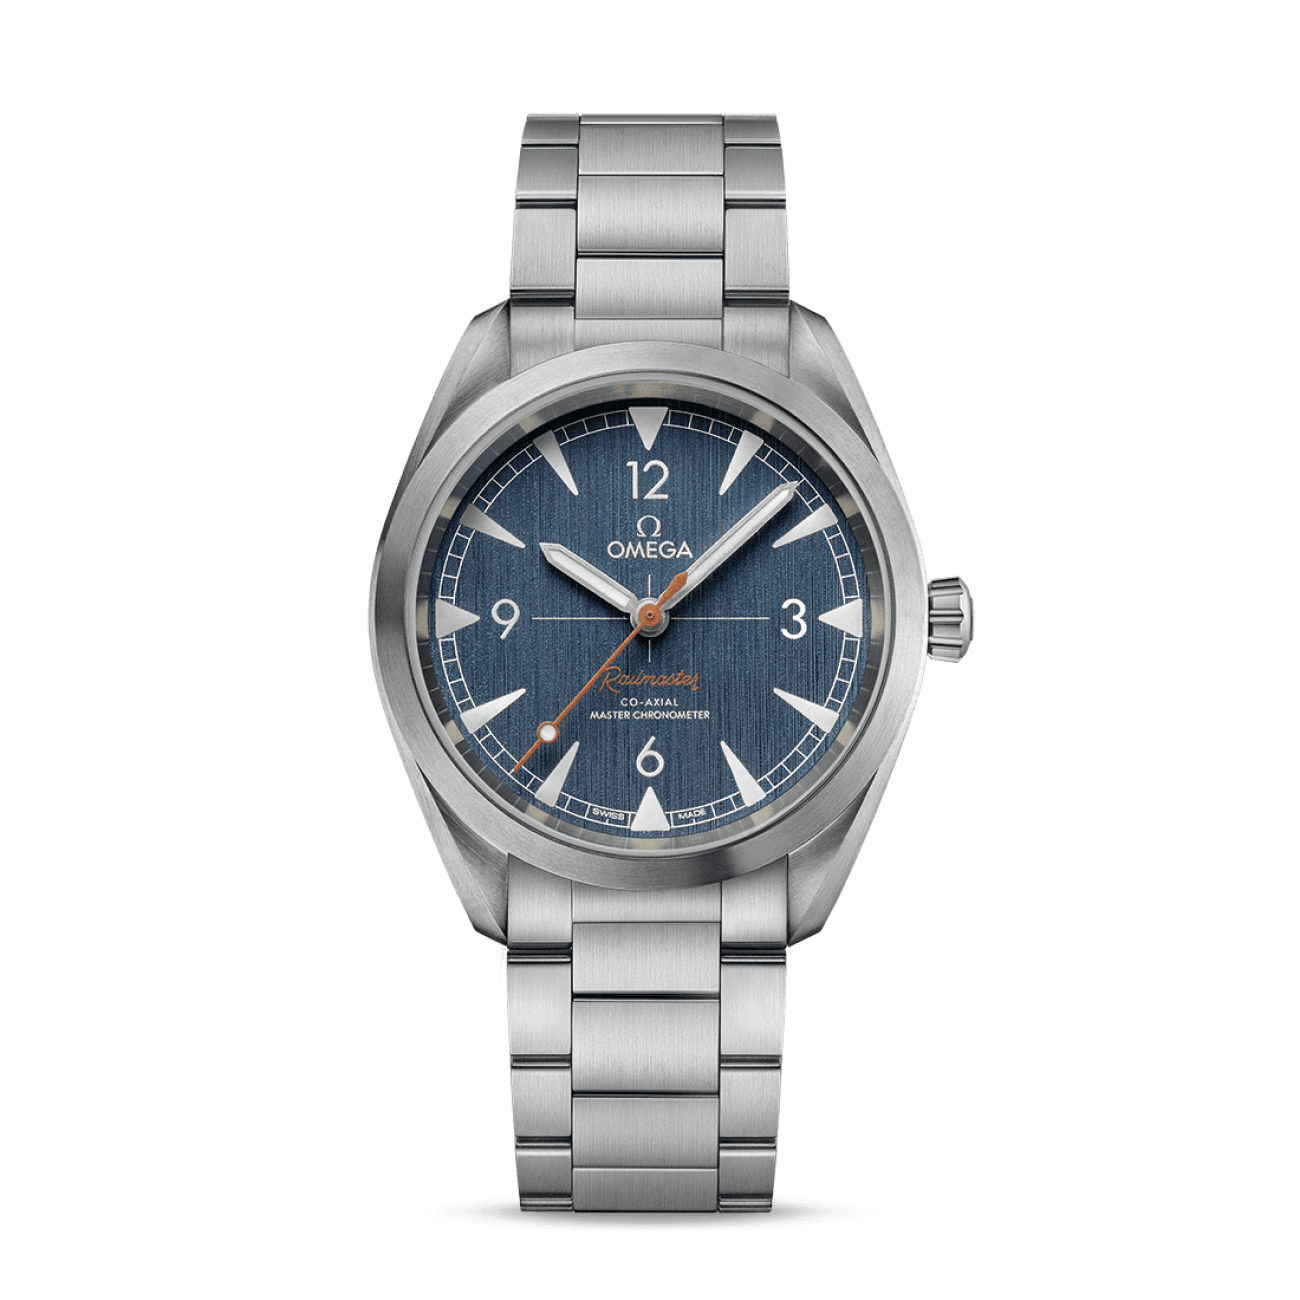 Omega Watches - Seamaster Omega Co-Axial Master Chronometer 40 MM | Manfredi Jewels